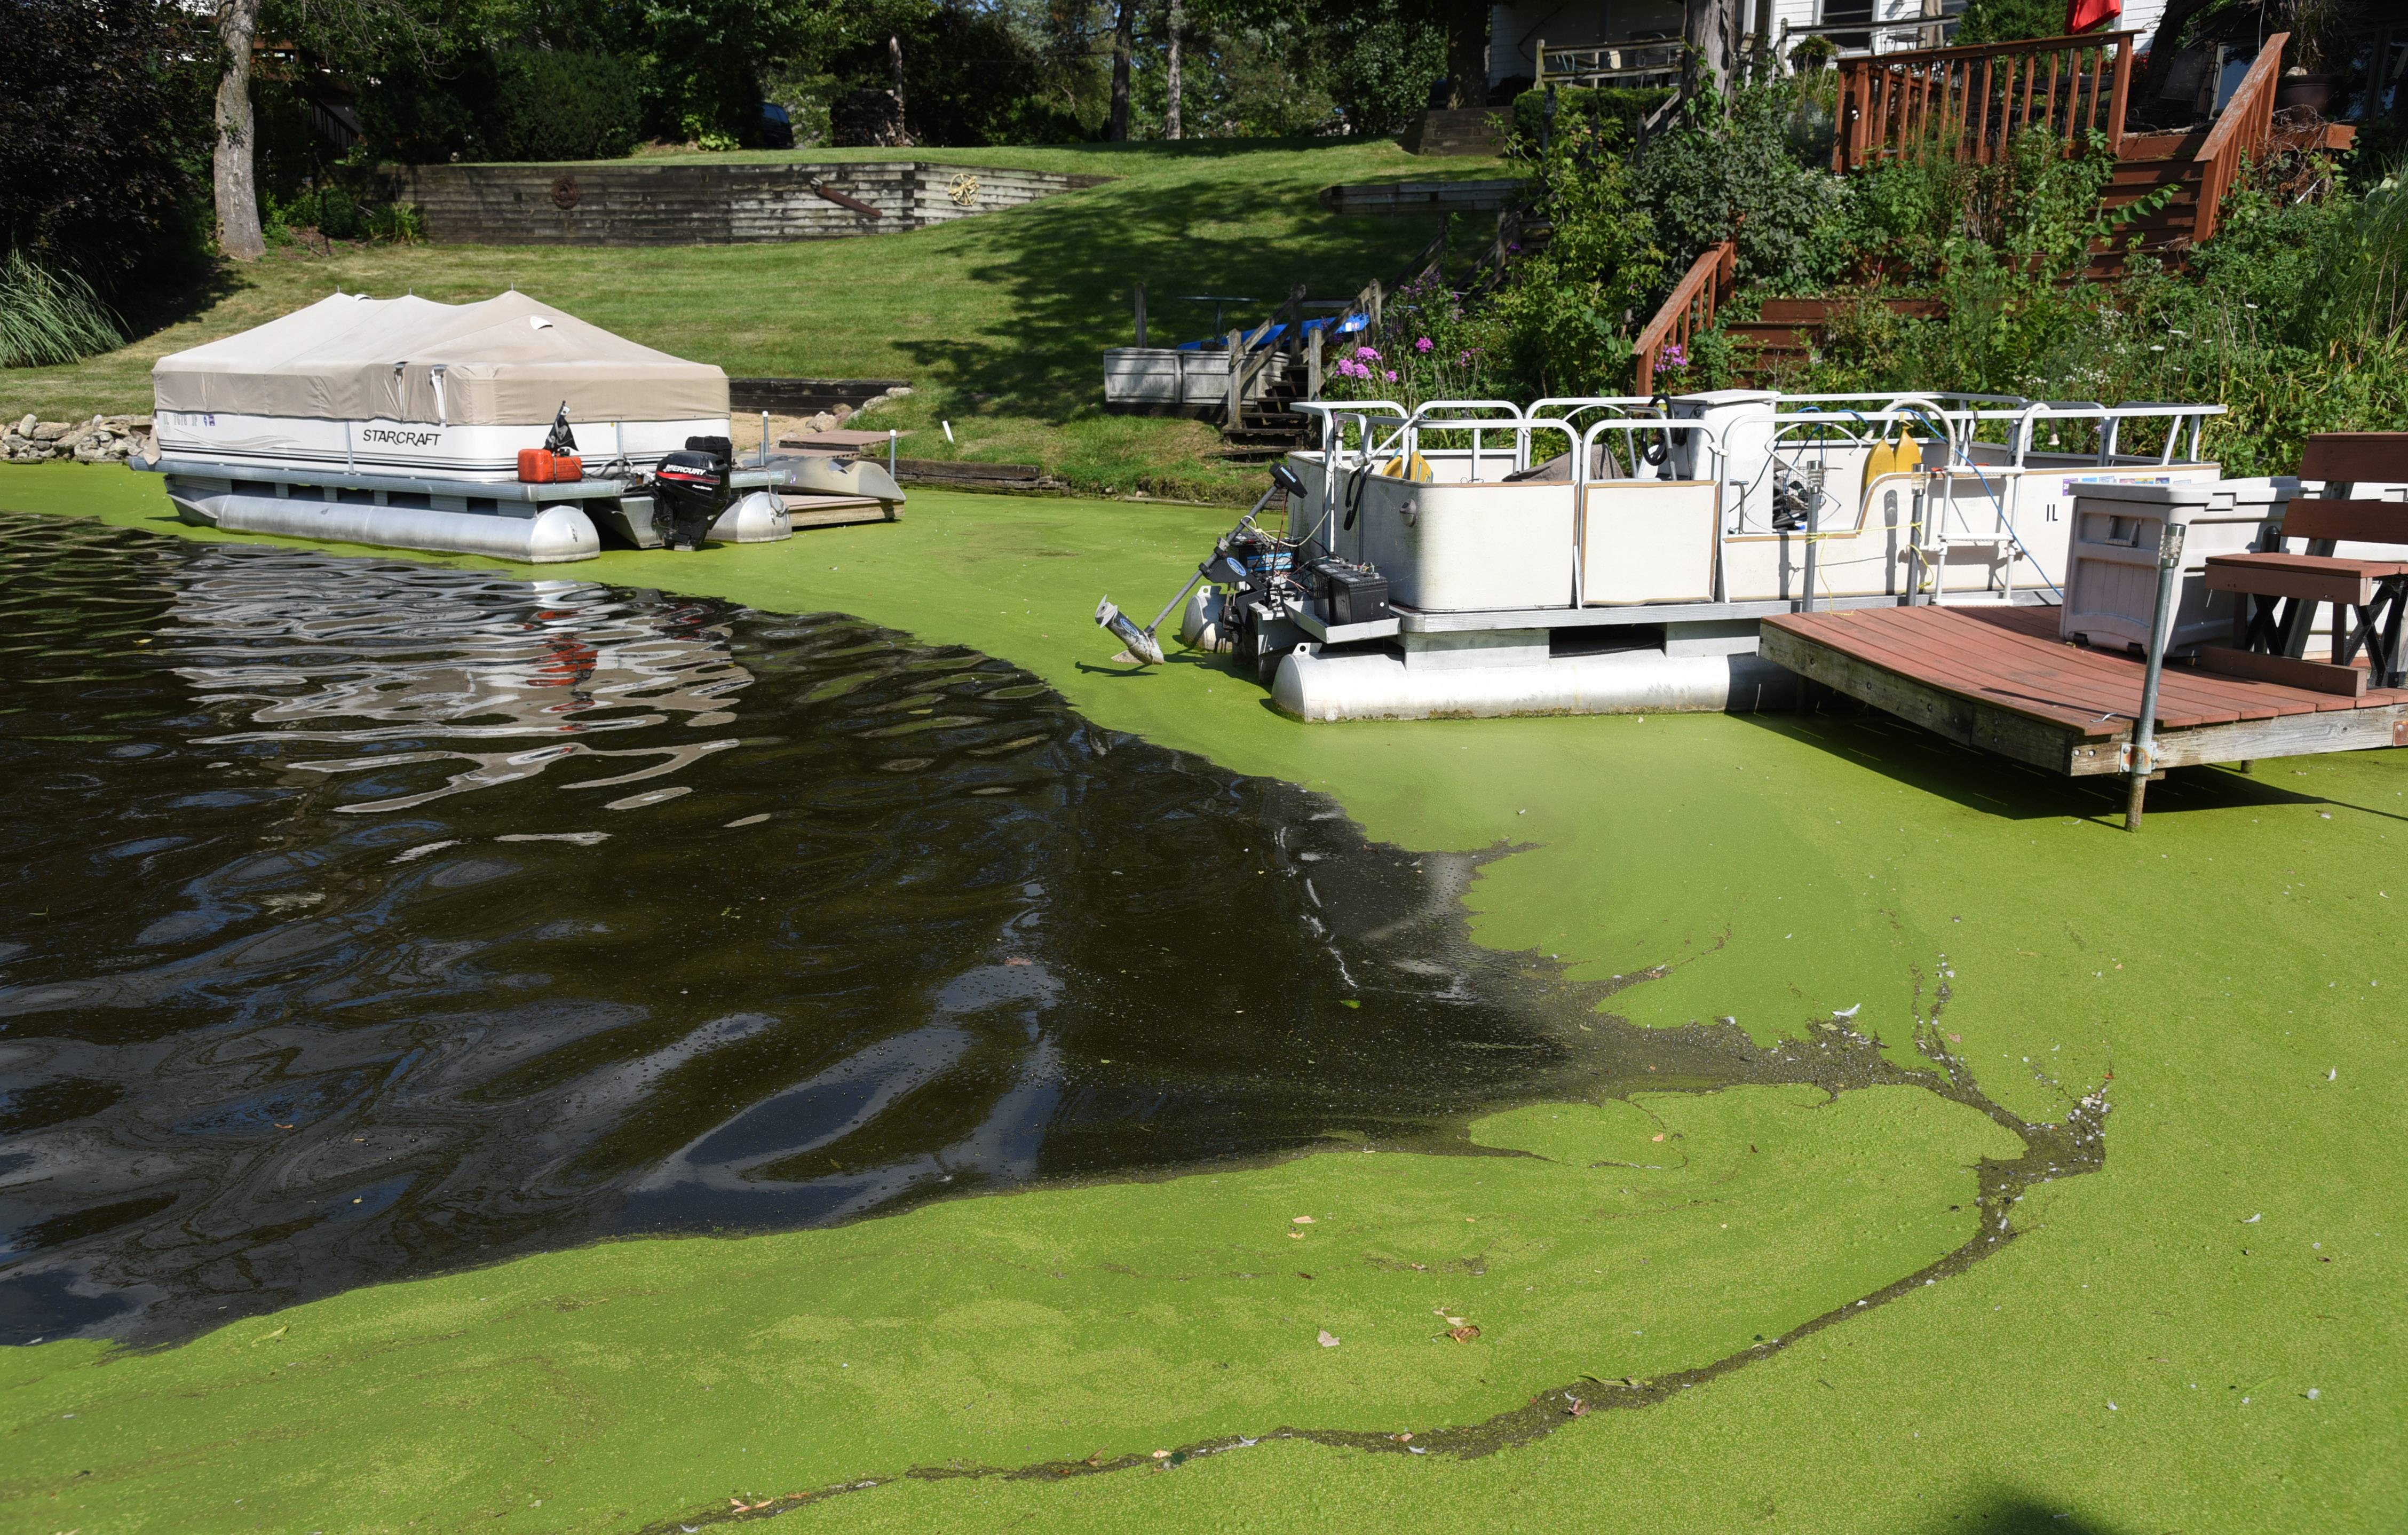 Algae is prevalent on the shoreline of Island Lake's namesake lake near Island Drive. In an effort to improve the lake's quality, Island Lake could become the latest town to restrict the use of fertilizers containing phosphorous.